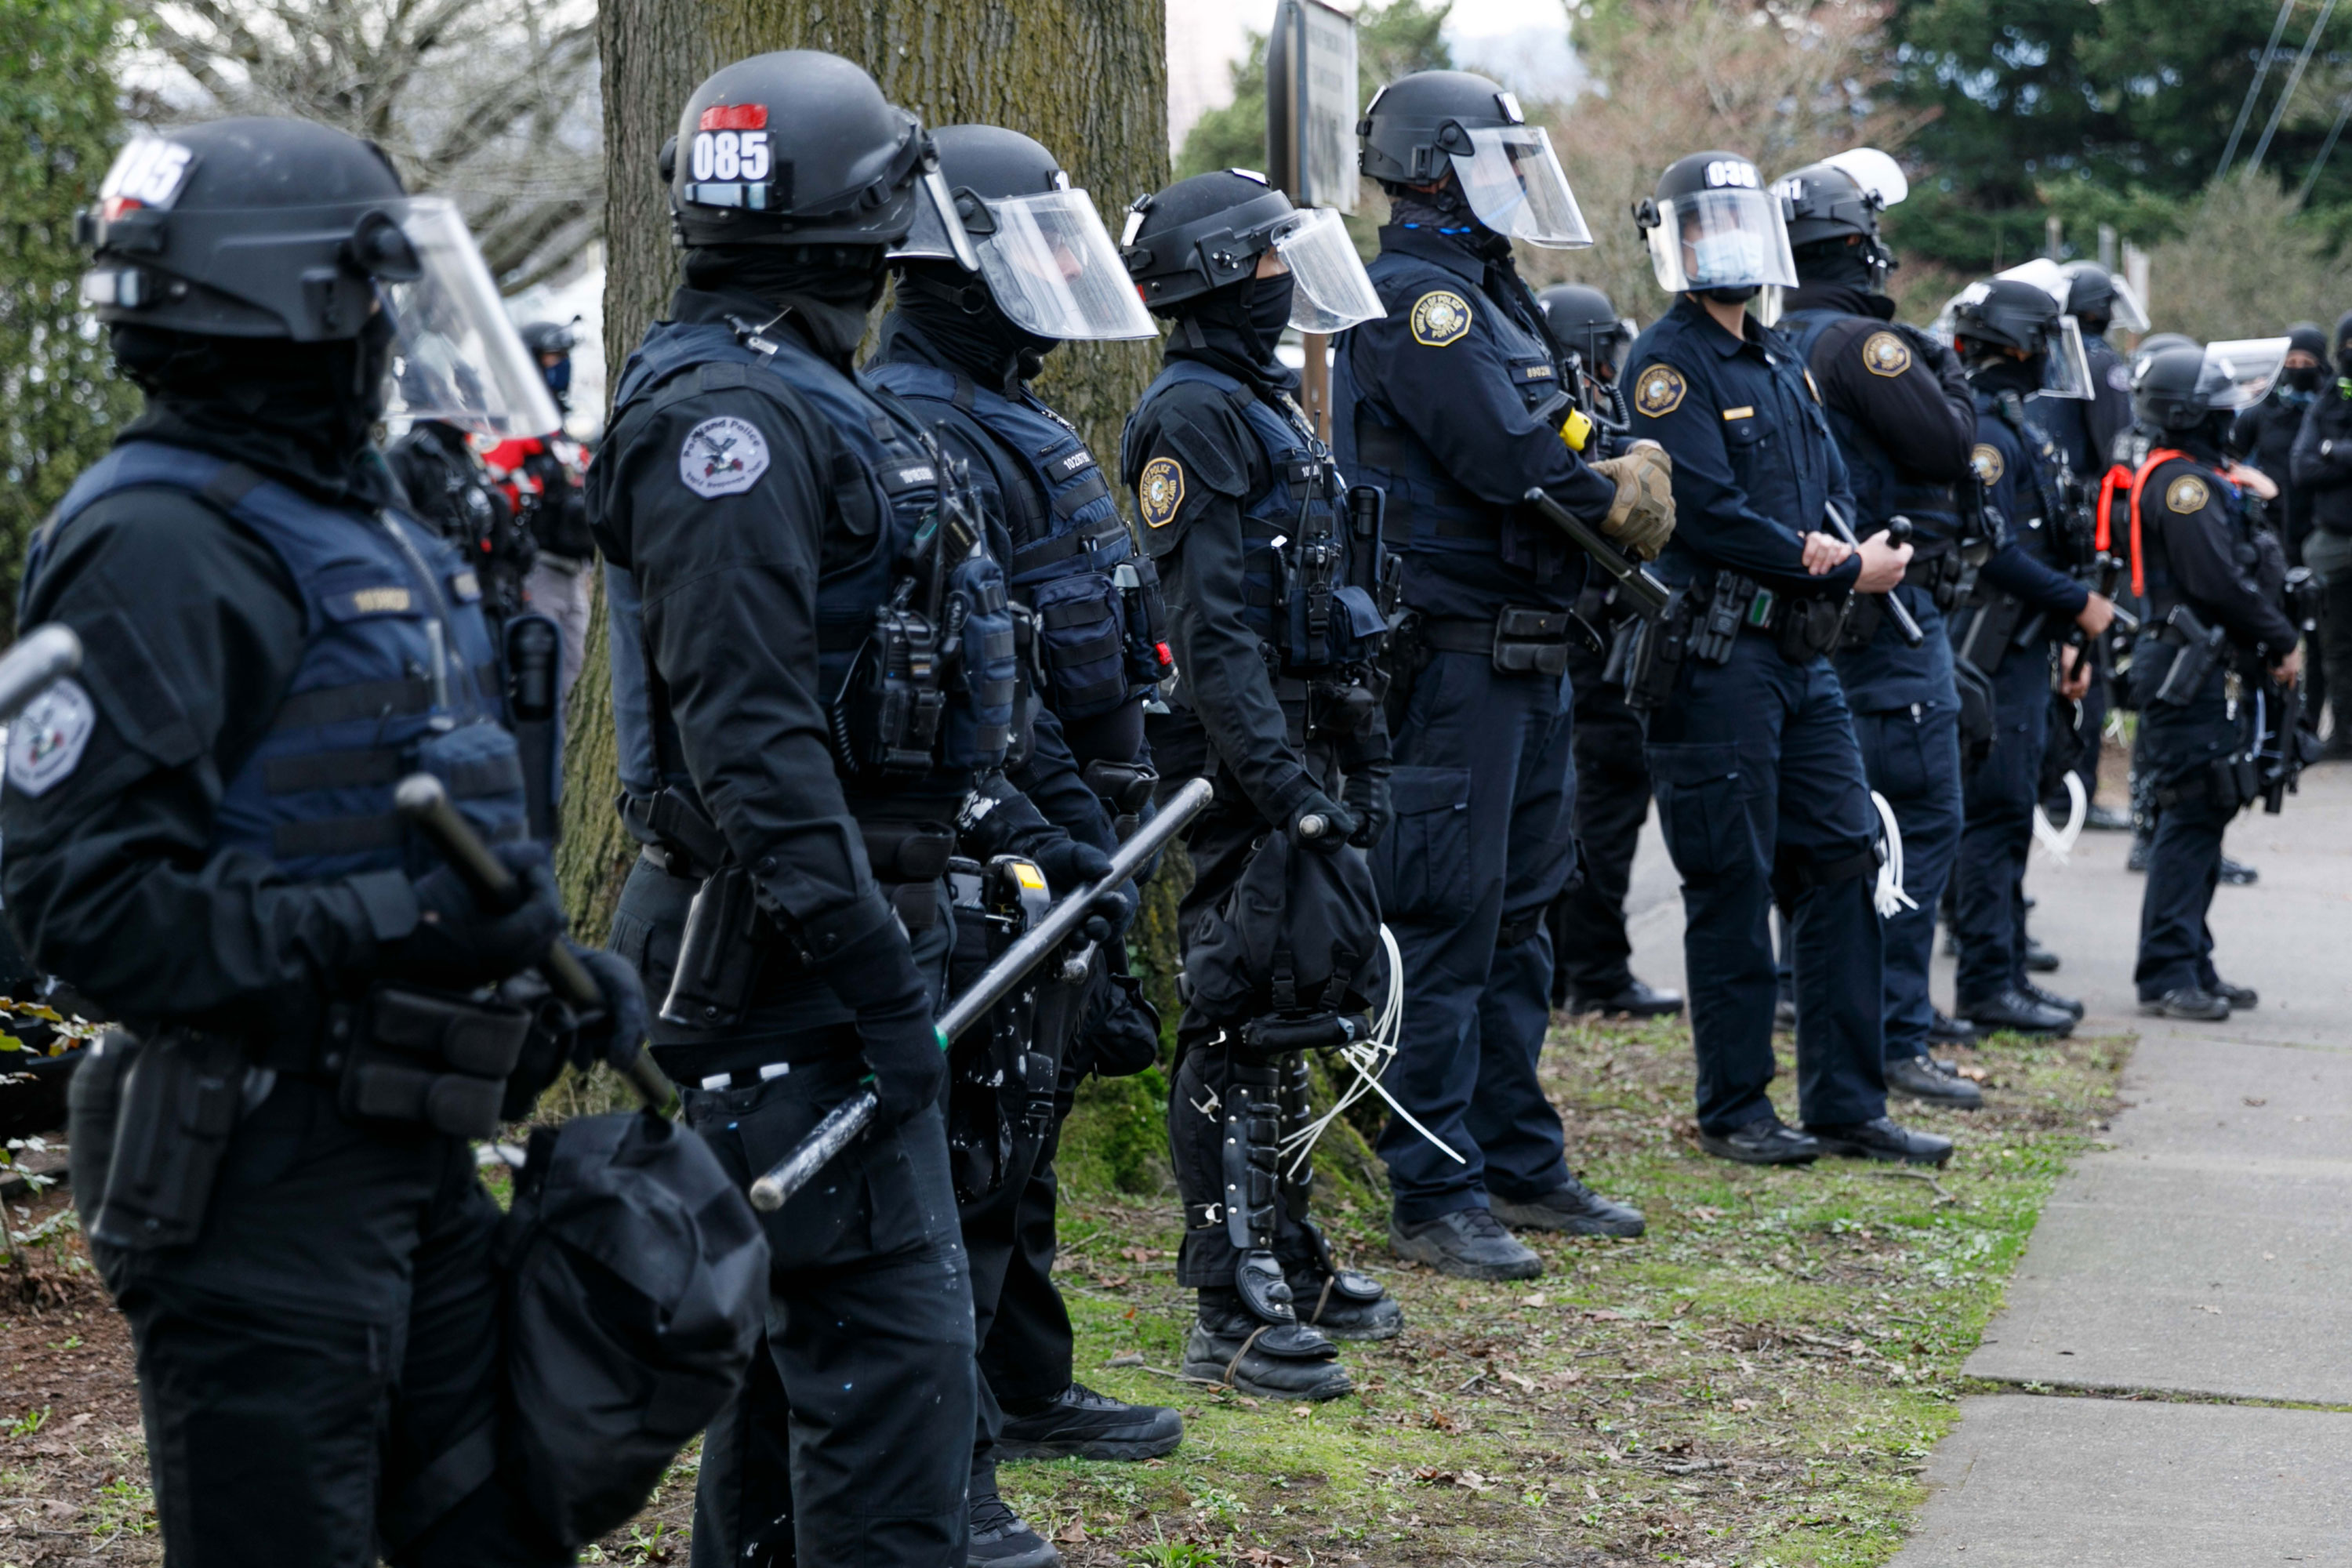 Four people charged in Portland after demonstrators vandalized federal ICE building, Democratic Party state headquarters